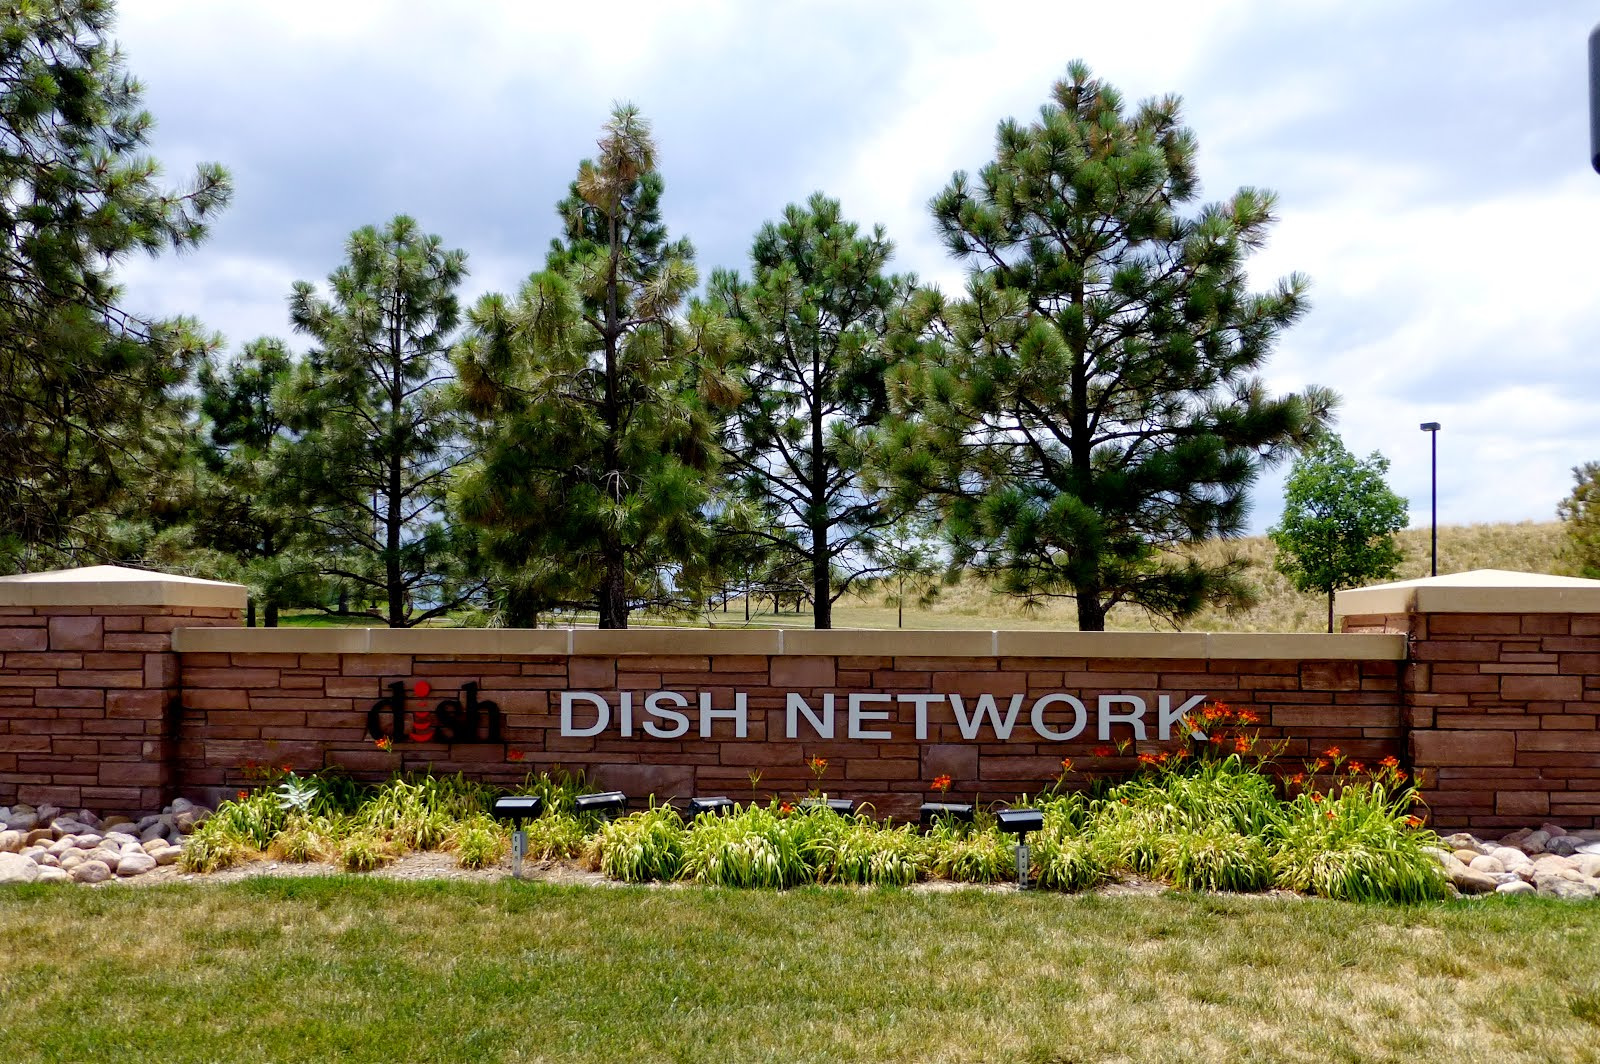 DISH Network Corp. 9601 South Meridian Boulevard Englewood, CO 80112 USA  Corporate Phone Number: 1-303-723-1000. Fax Number: 1-303-723-1999. Customer  ...